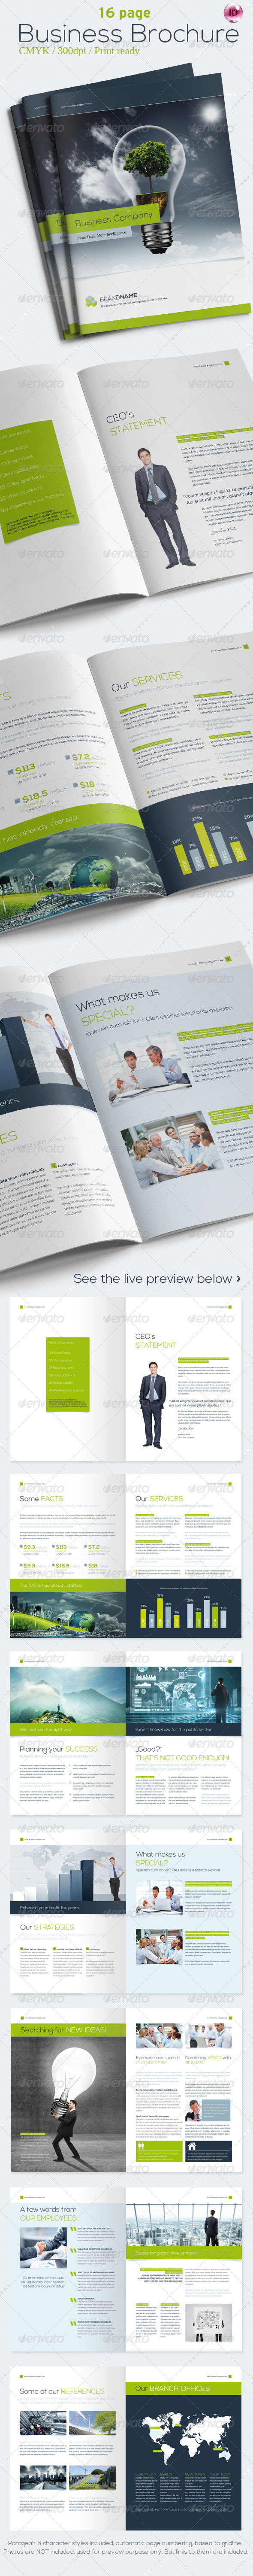 GraphicRiver 16 Pages Business Brochure 4999451